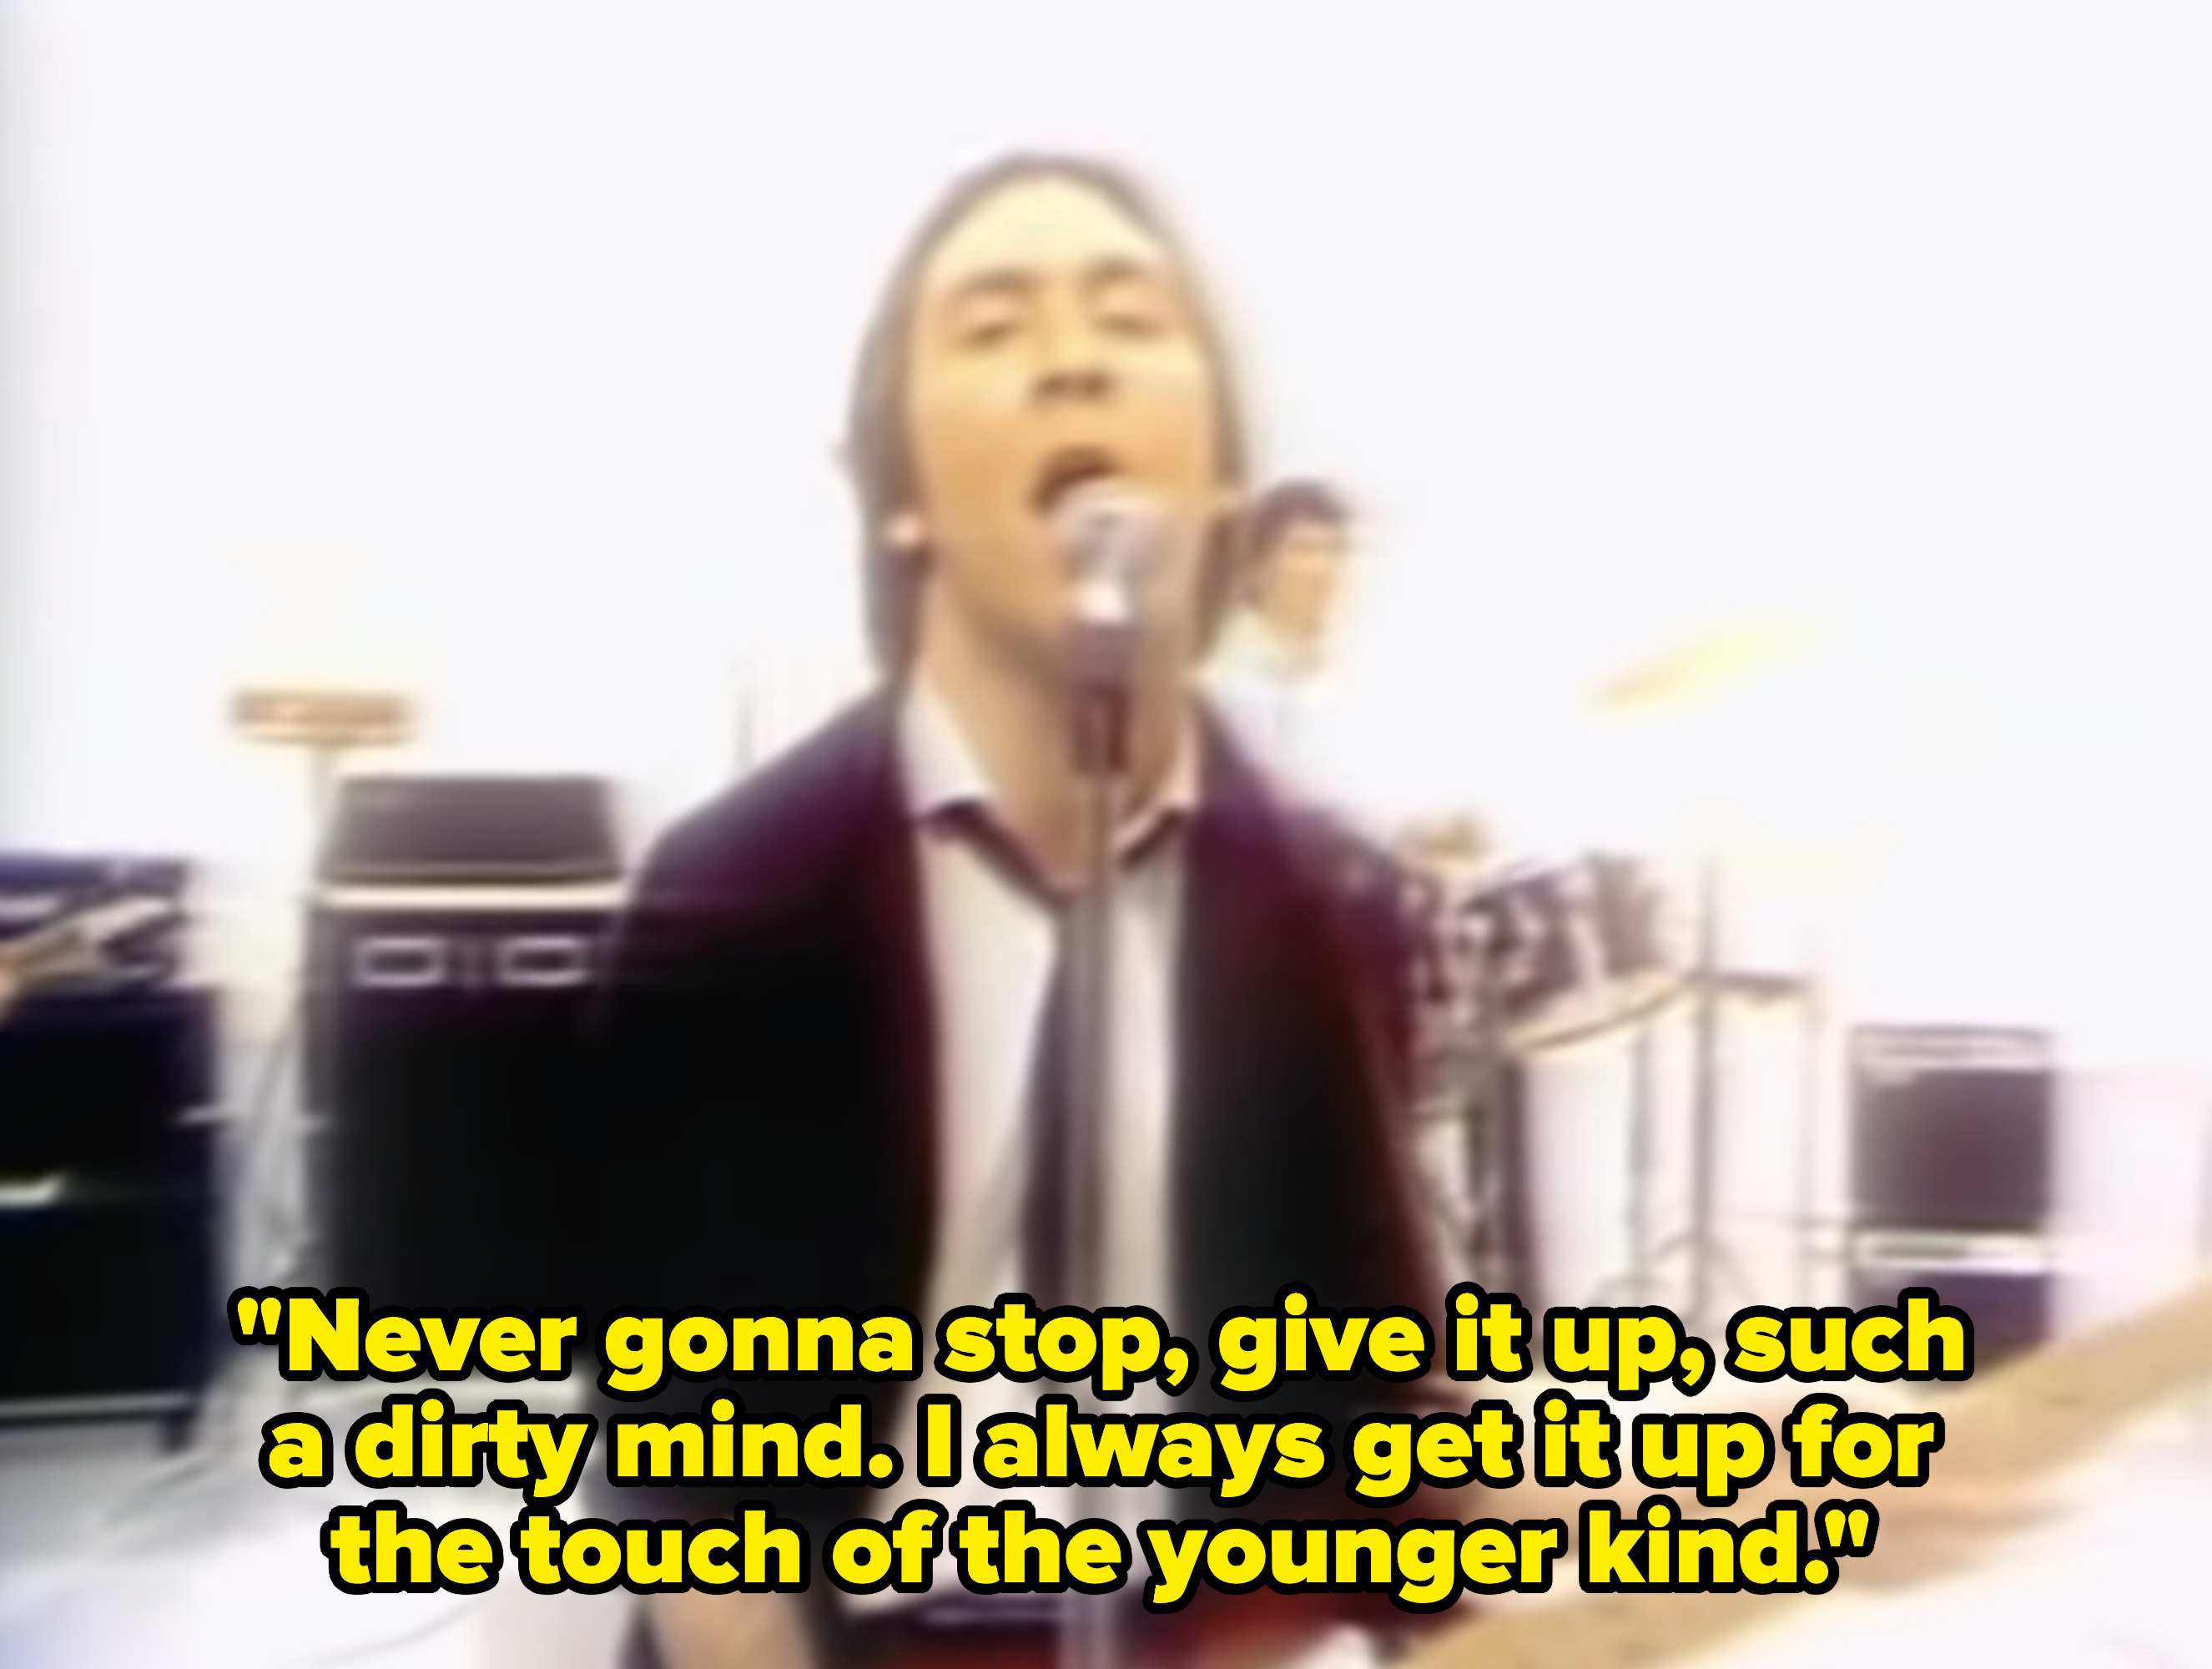 """The """"My Sharona"""" music video with the lyrics,""""Never gonna stop, give it up, such a dirty mind. I always get it up for the touch of the younger kind"""""""